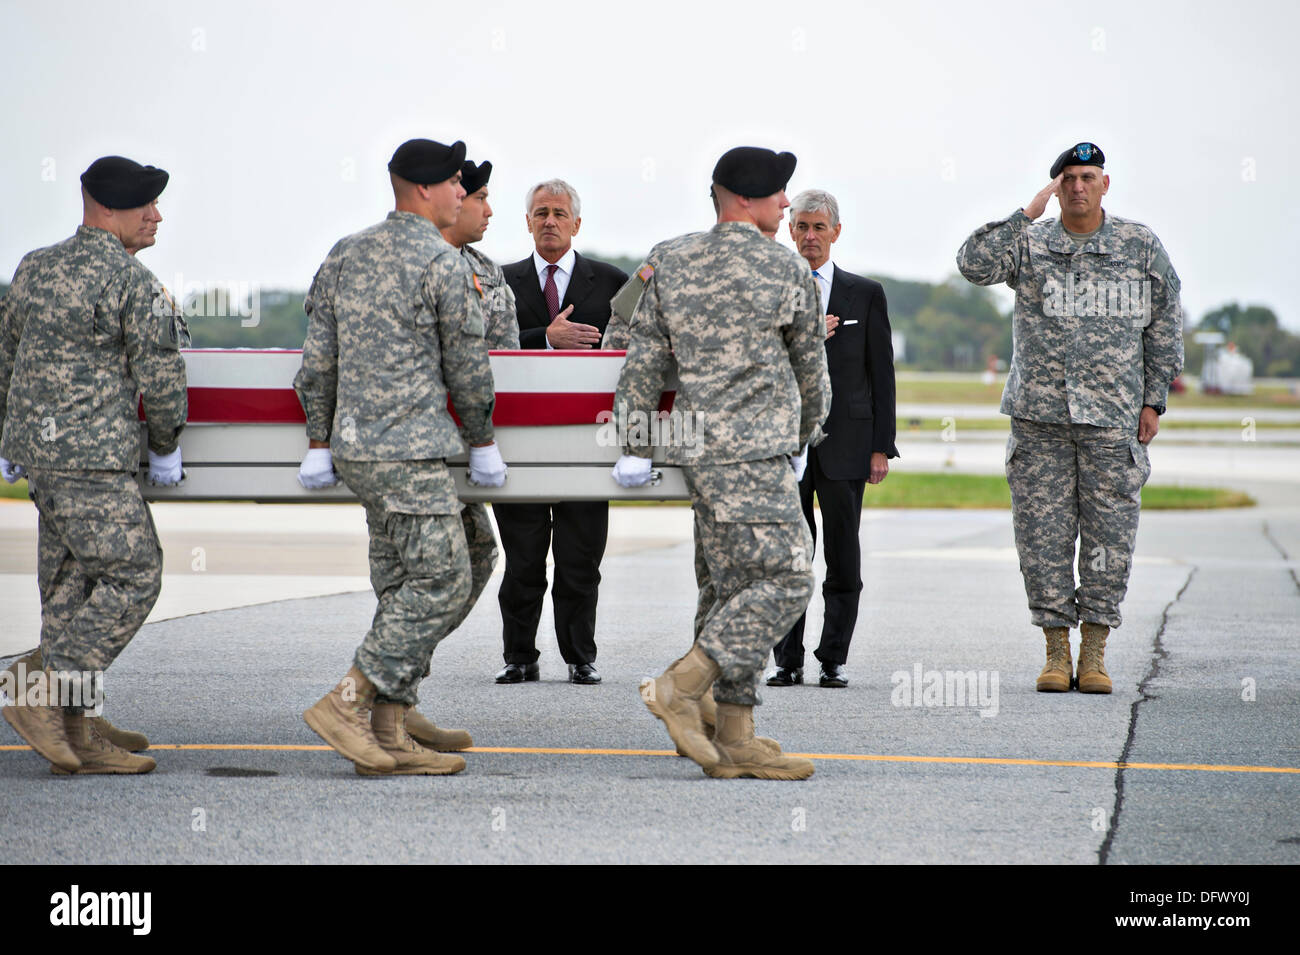 US Secretary of Defense Chuck Hagel, left, stands his hand over his heart with Secretary of the Army John McHugh and Army Chief General Ray Odierno as white-gloved soldiers carried the flag-draped case carrying the remains of Army Pfc. Cody from a C-17 cargo plane at Dover Air Force Base October 9, 2013 in Dover, DE.  Hagel announced that the Fisher House Foundation will provide the families of the fallen with the soldiers death benefits which cannot be paid by the Pentagon due to the government shutdown. - Stock Image